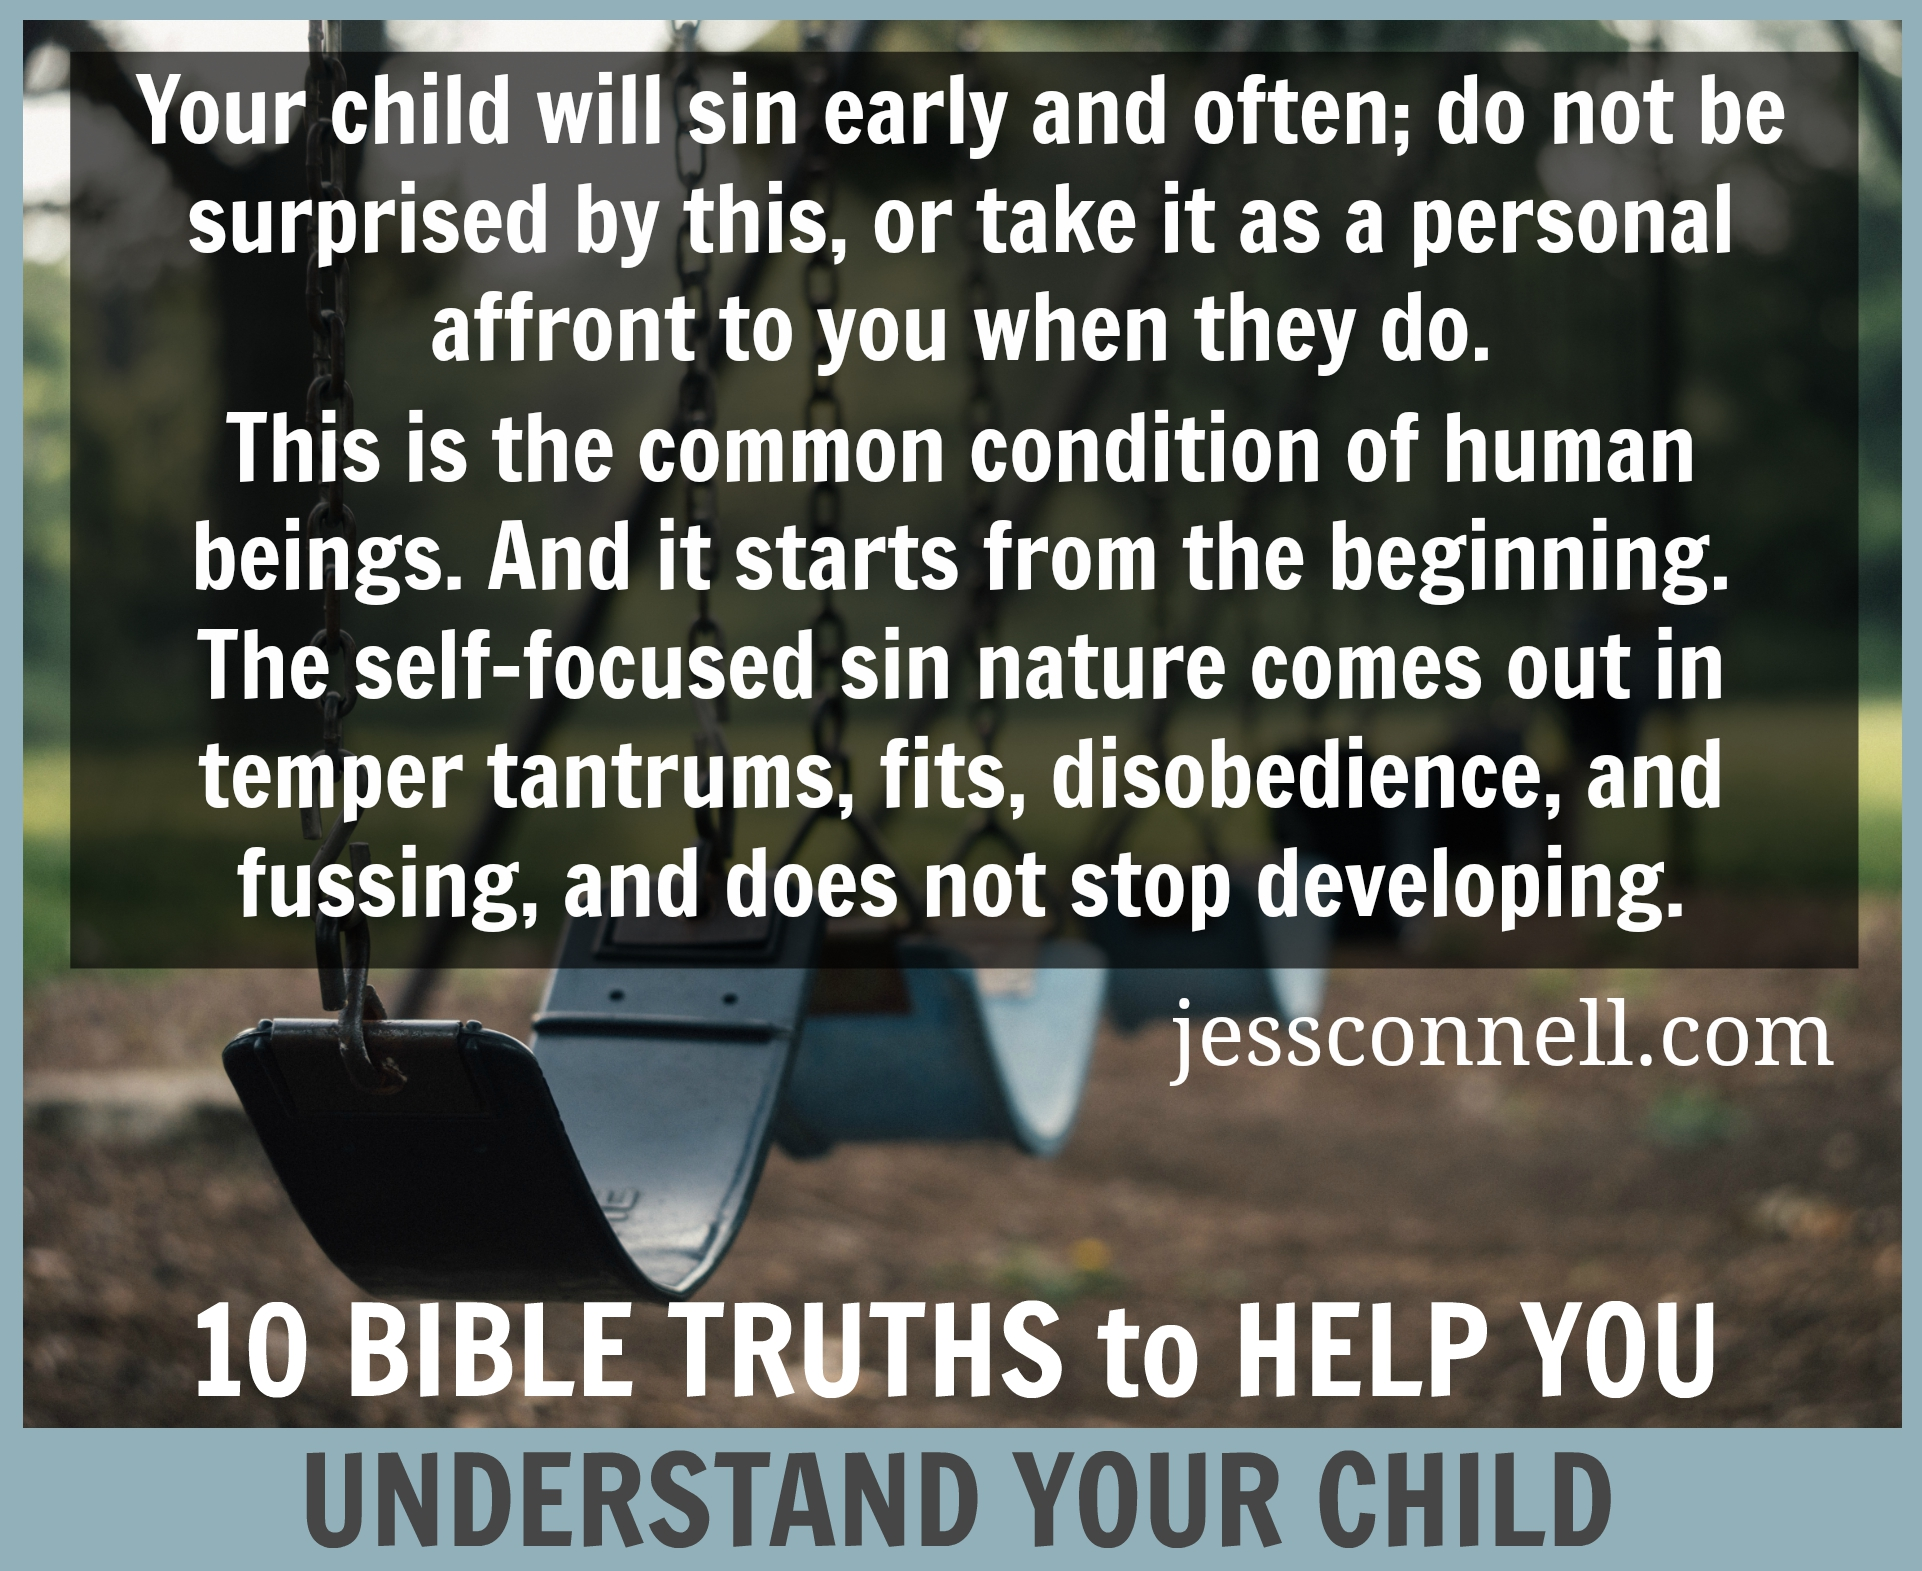 10 Bible Truths to Help You UNDERSTAND Your Child // jessconnell.com